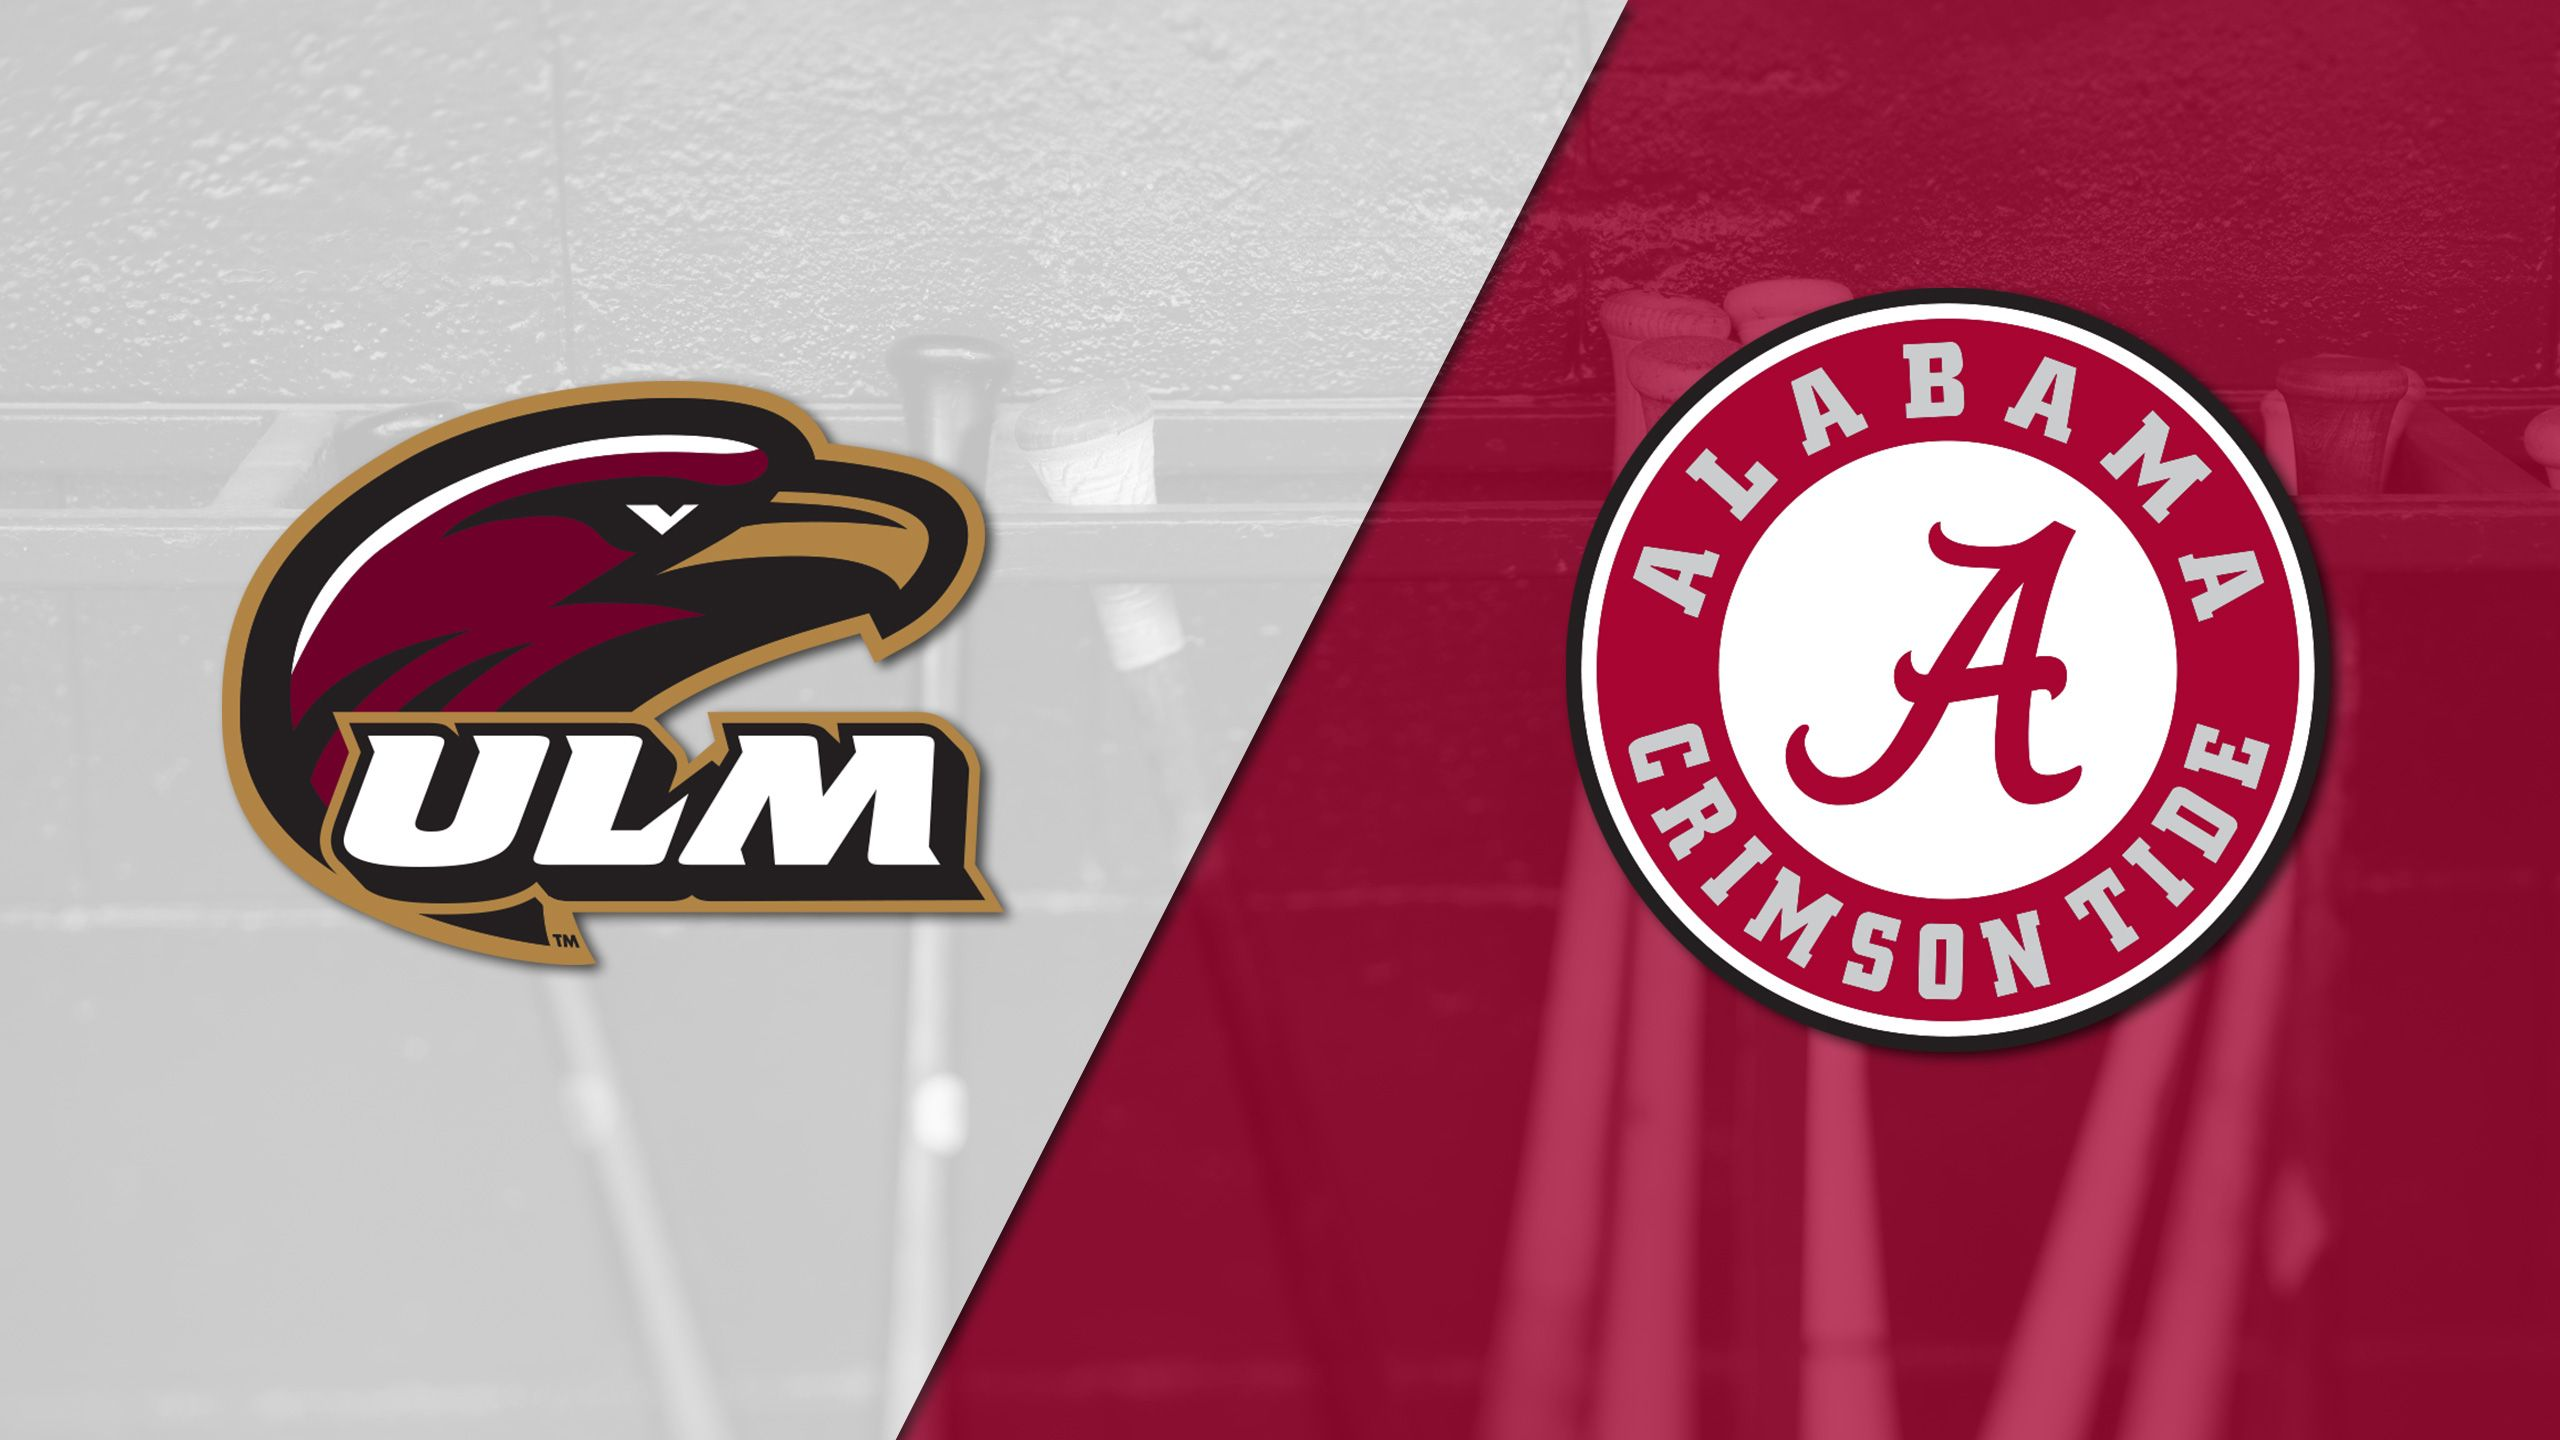 Louisiana-Monroe vs. Alabama (Baseball)